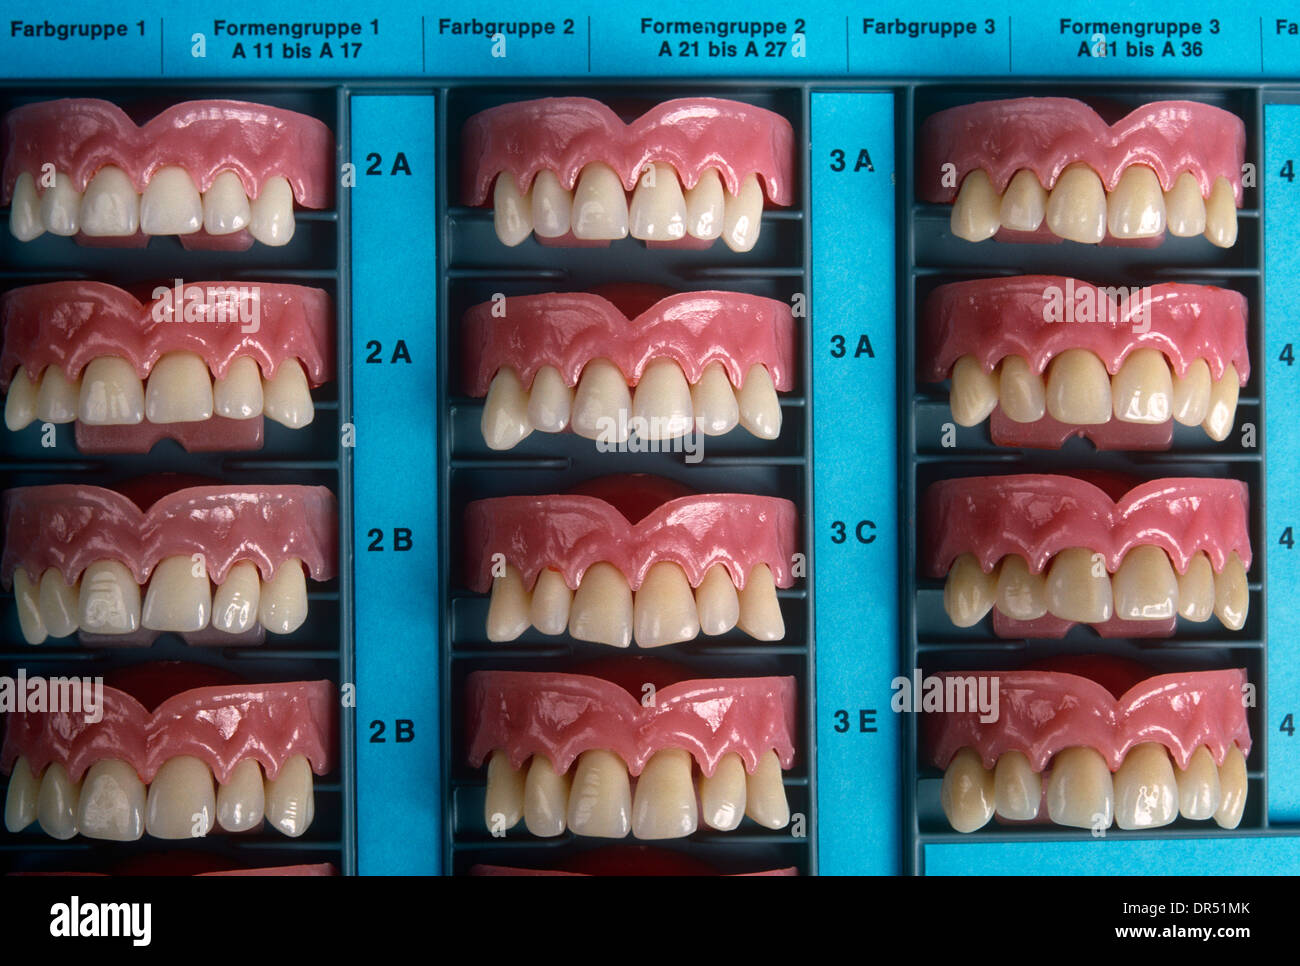 acrylic-teeth-samples-displayed-at-ivocl